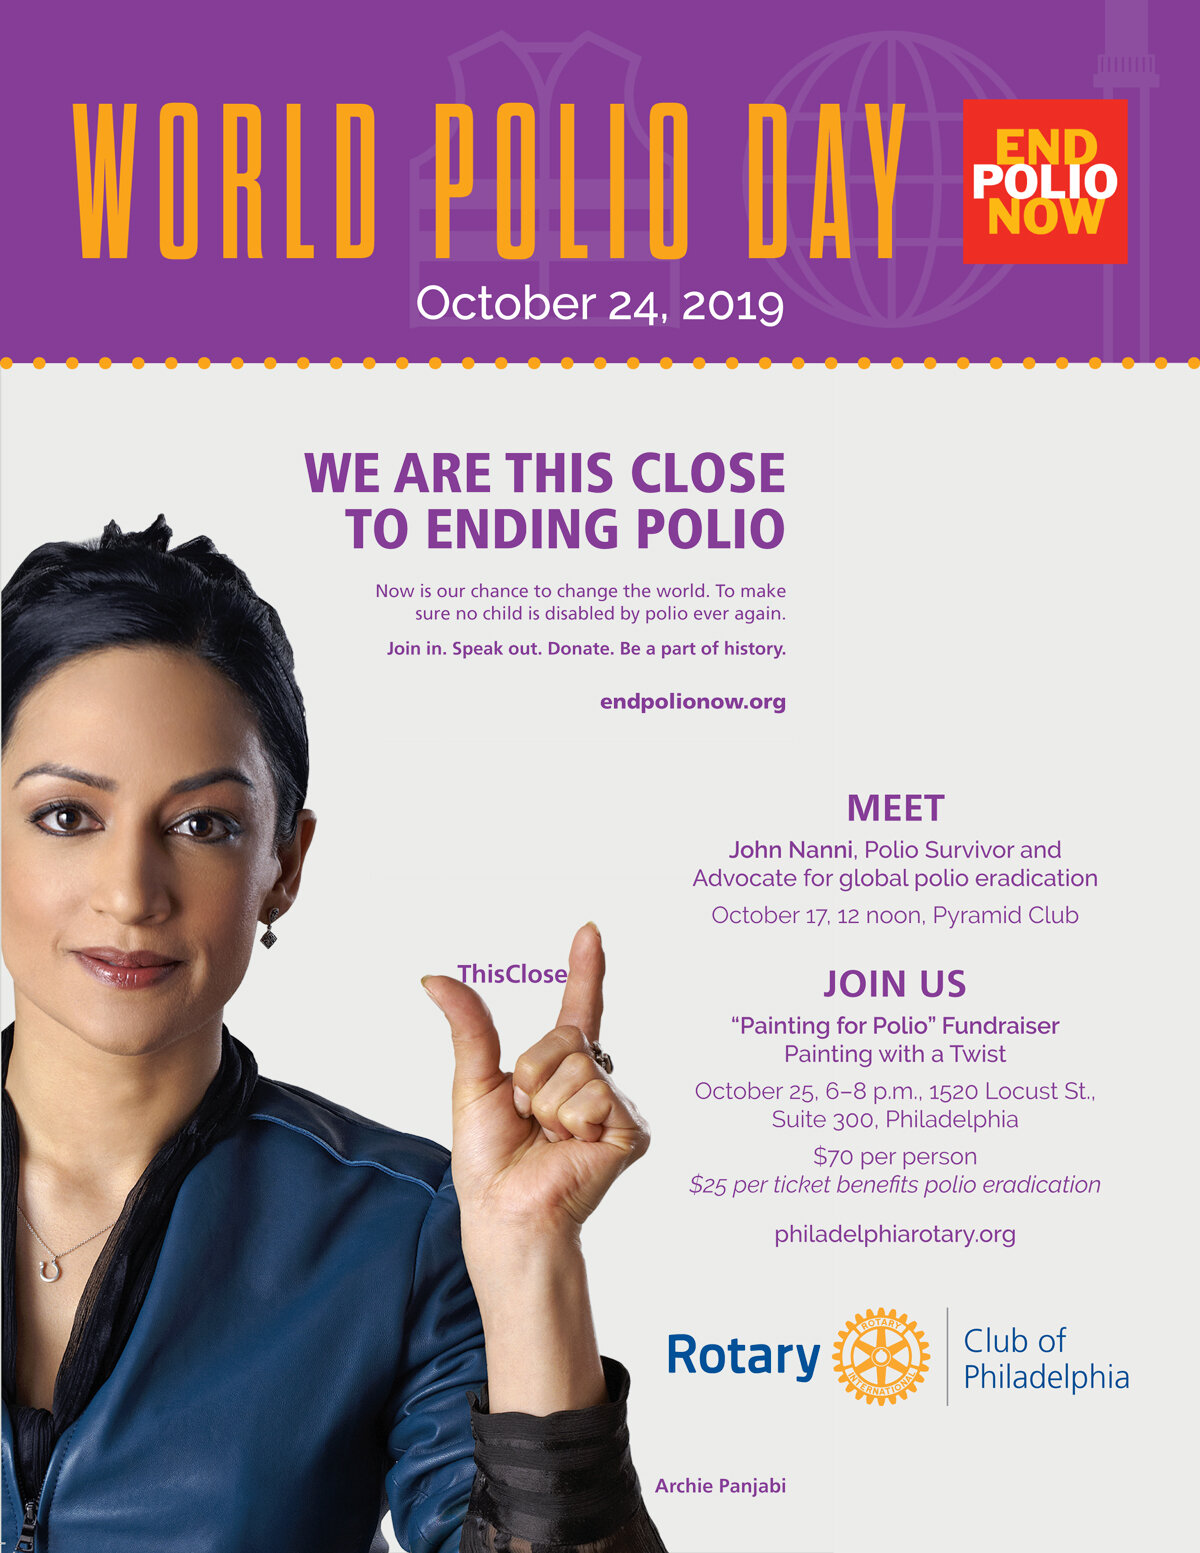 "Friday, October 25, 2019 - ""PAINTING FOR POLIO"" FUNDRAISER6‒8 p.m. (Starts promptly!)Painting with a Twist, 1520 Locust Street, Suite 300Philadelphia, PA 19102$70 per person / $25 per ticket goes towards polio eradicationFood and beverages providedPlease register by OCTOBER 16th:Use the member link here(Passcode: FUNDRAISER) -or- contact: Kelly Feighan: Kelly_feighan@yahoo.com"